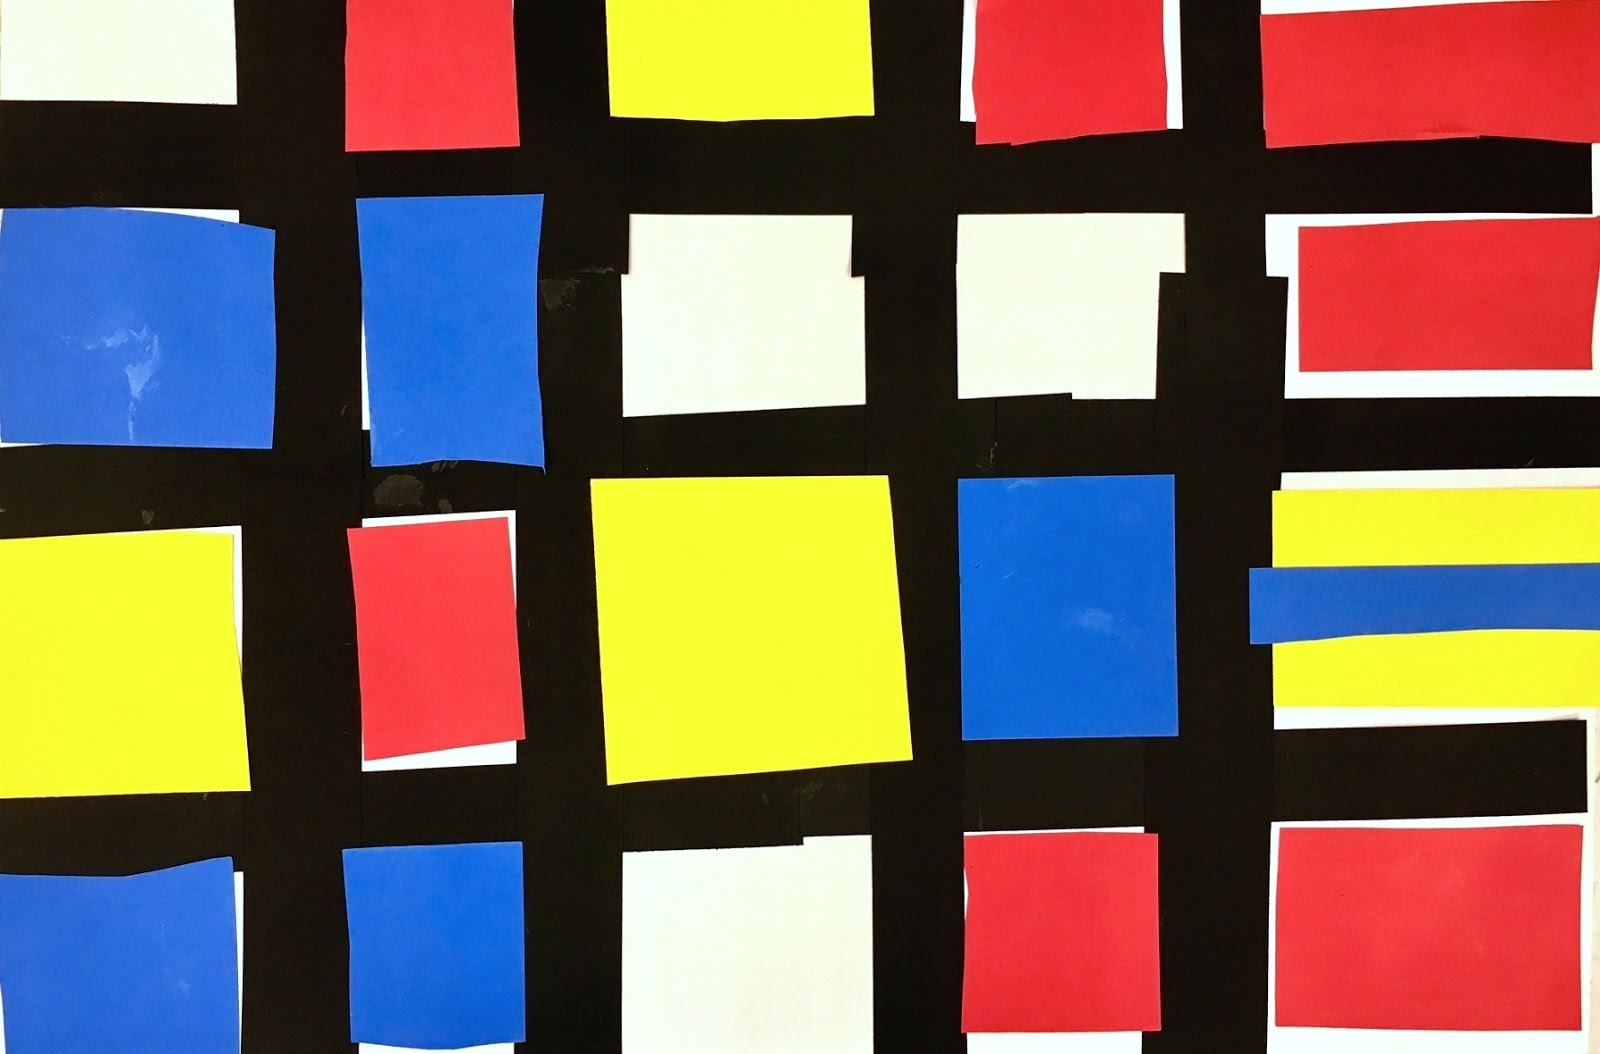 art at hosmer abstract paintings with primary colors